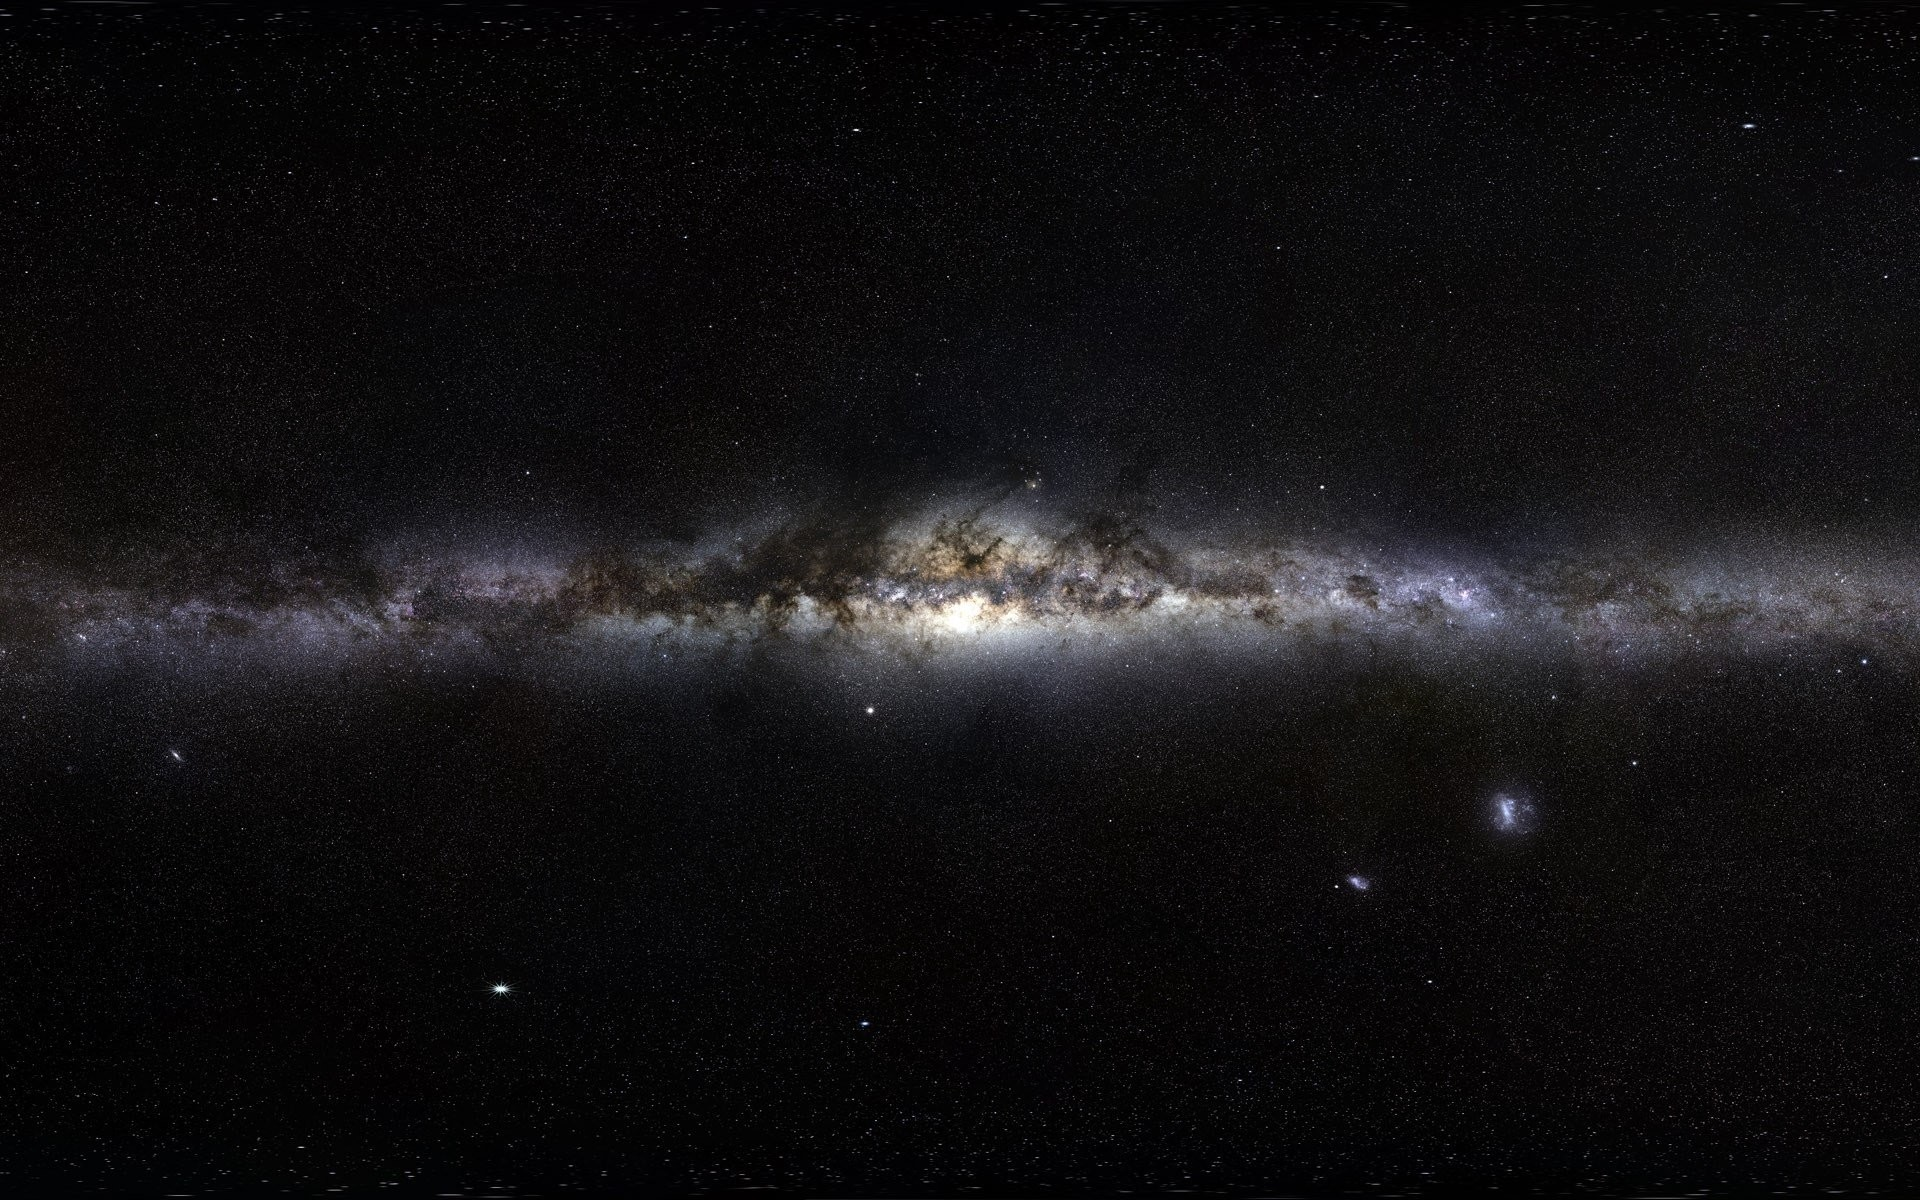 Scape stars Hubble Space Telescope The Real Galaxies dark wallpaper |  | 566138 | WallpaperUP